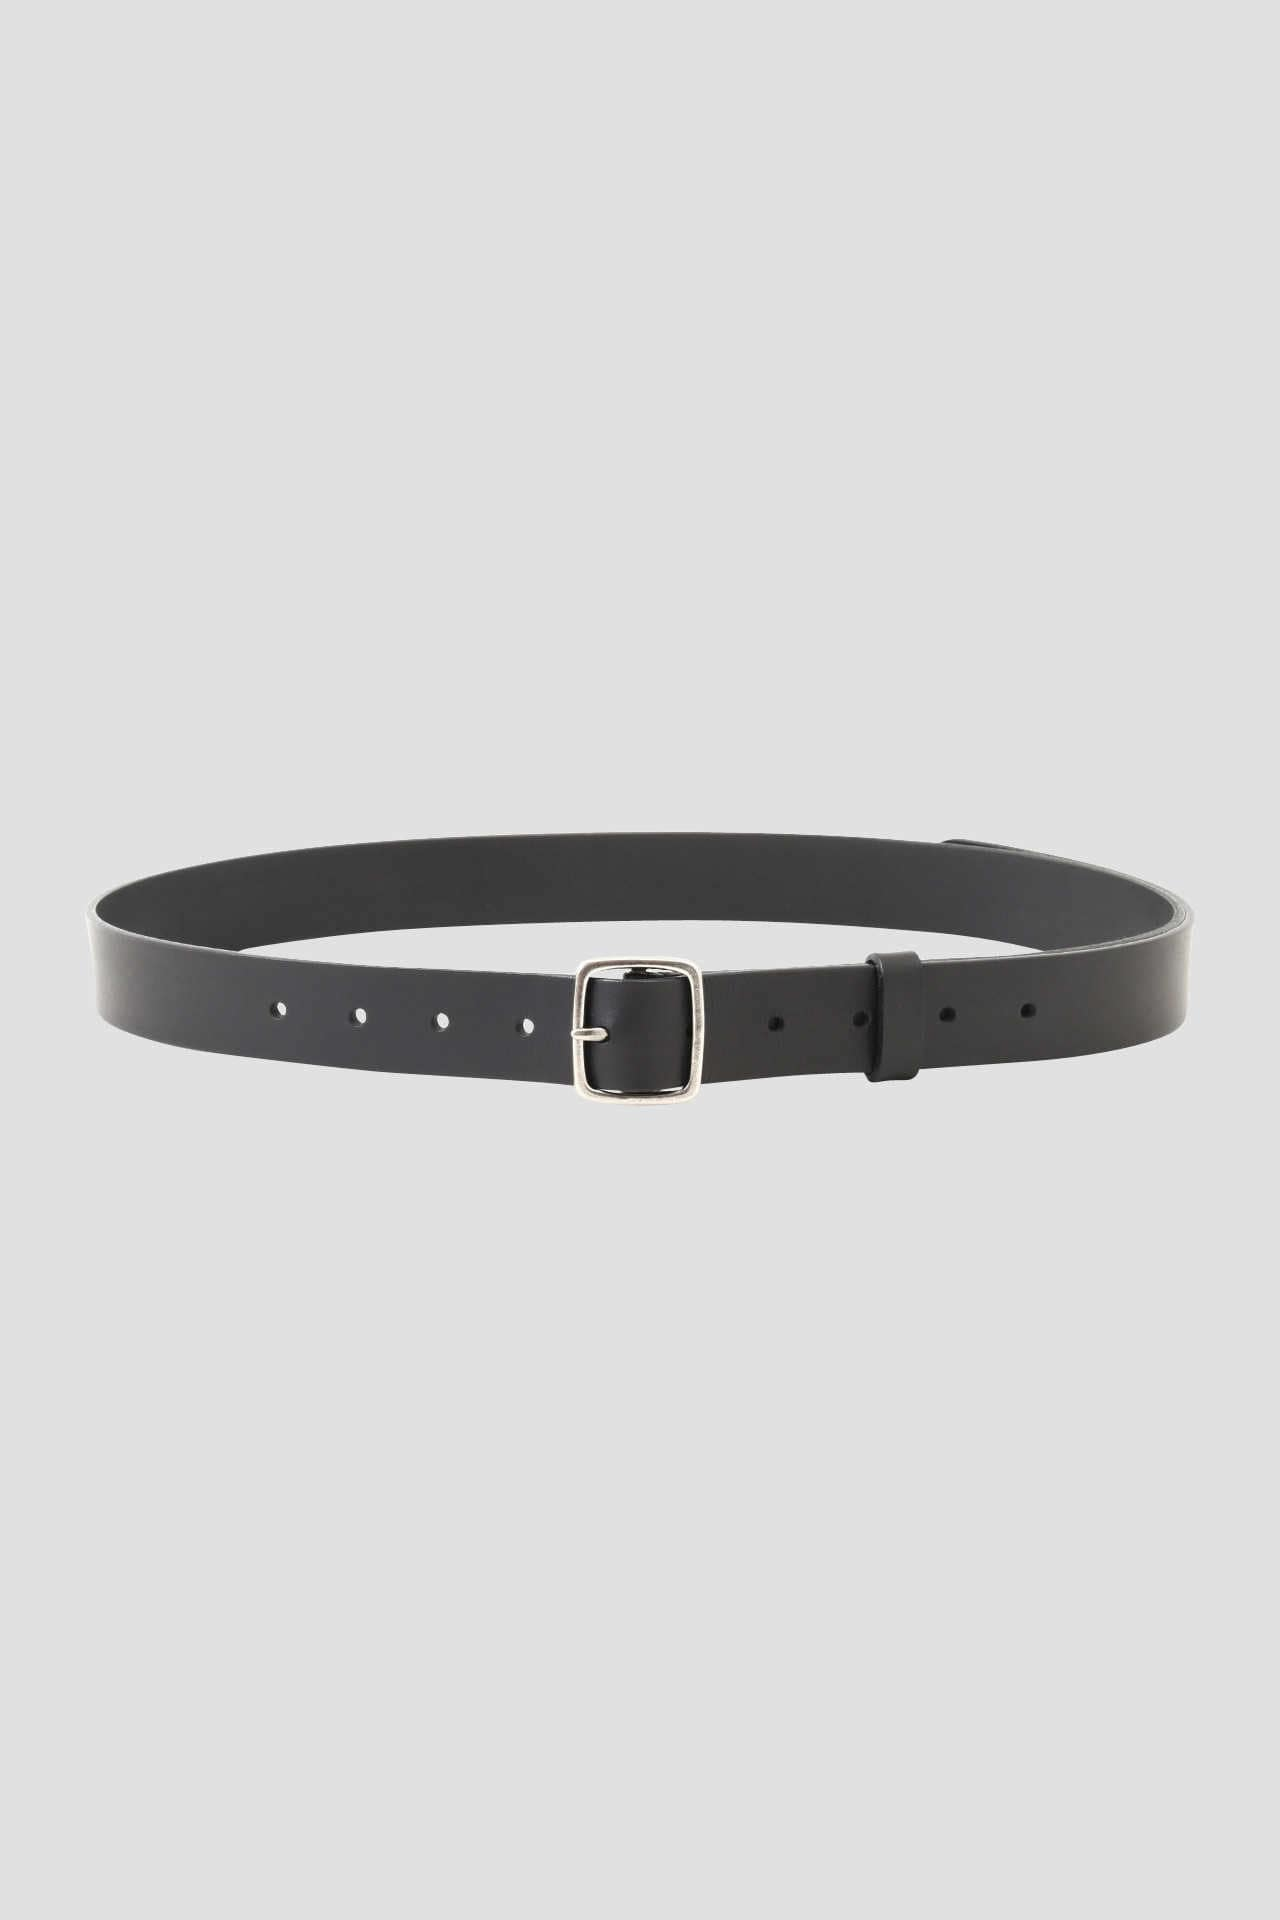 SQUARE BUCKLE BELT5